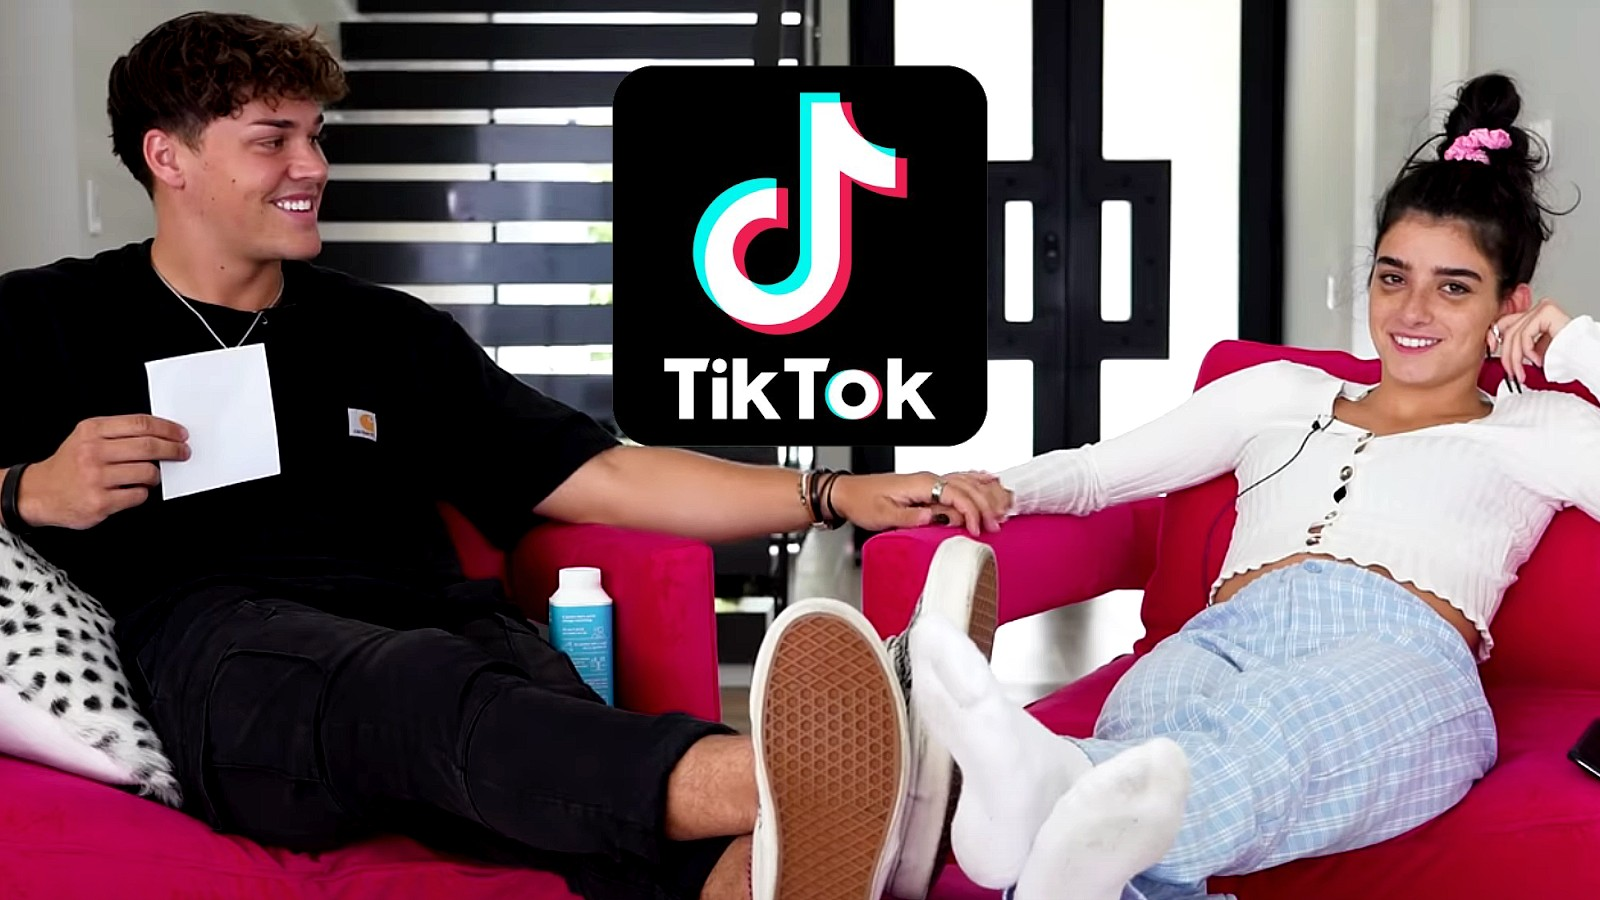 Dixie and Noah holding hands by TikTok logo